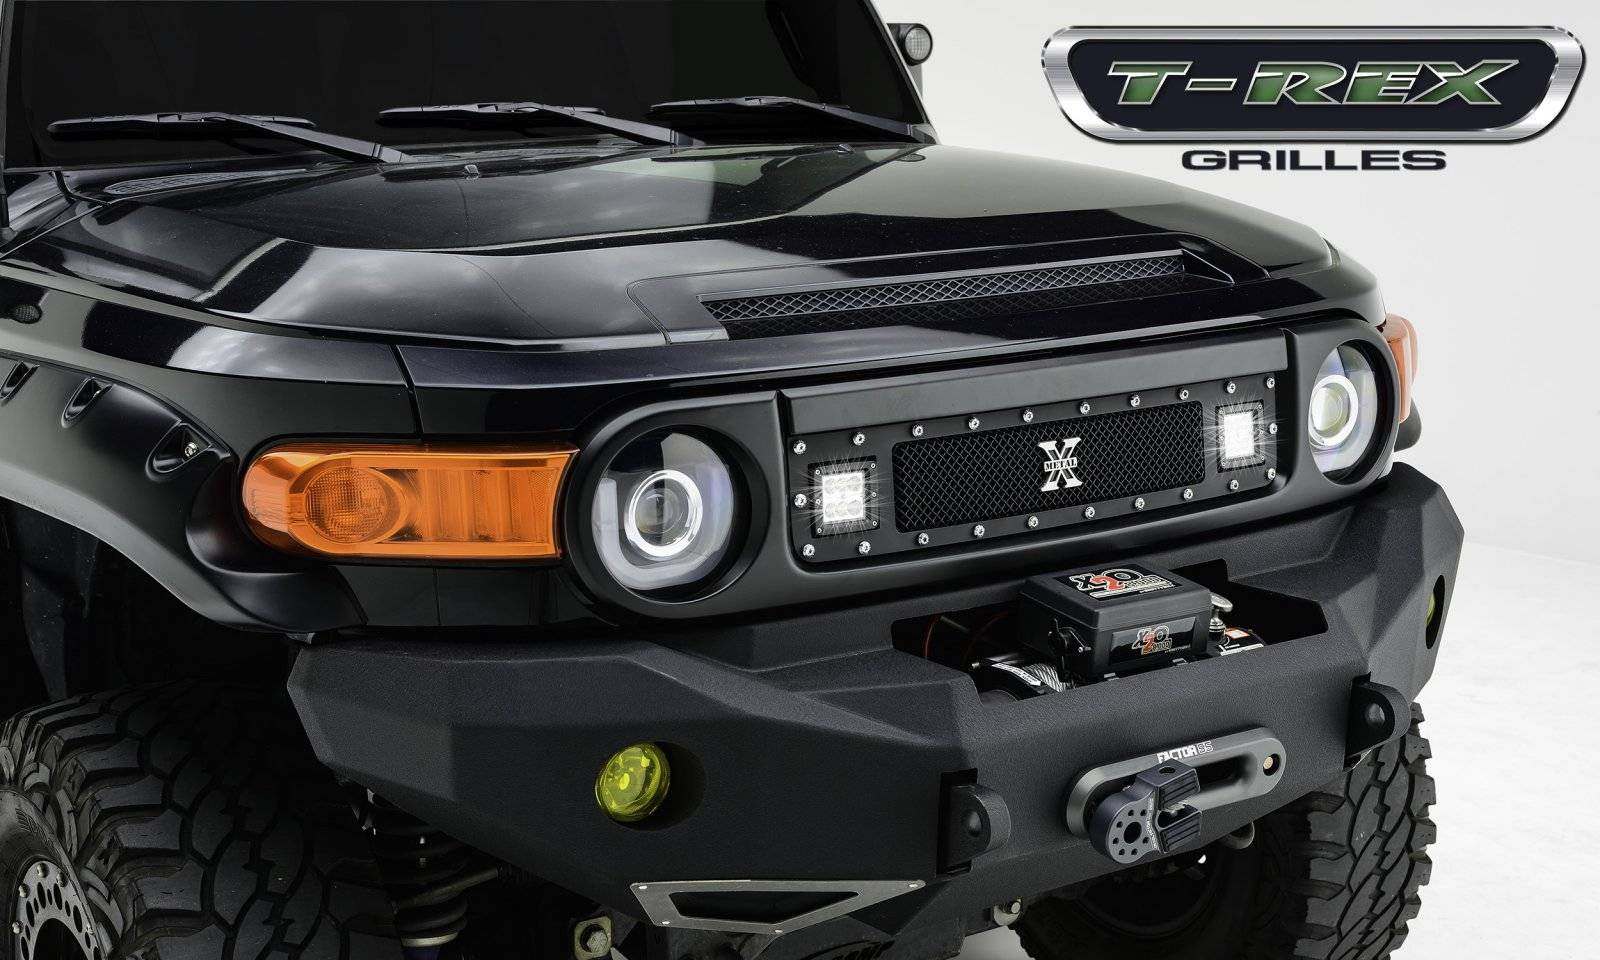 Toyota Fj Cruiser Torch Series Led Light Grille 2 3